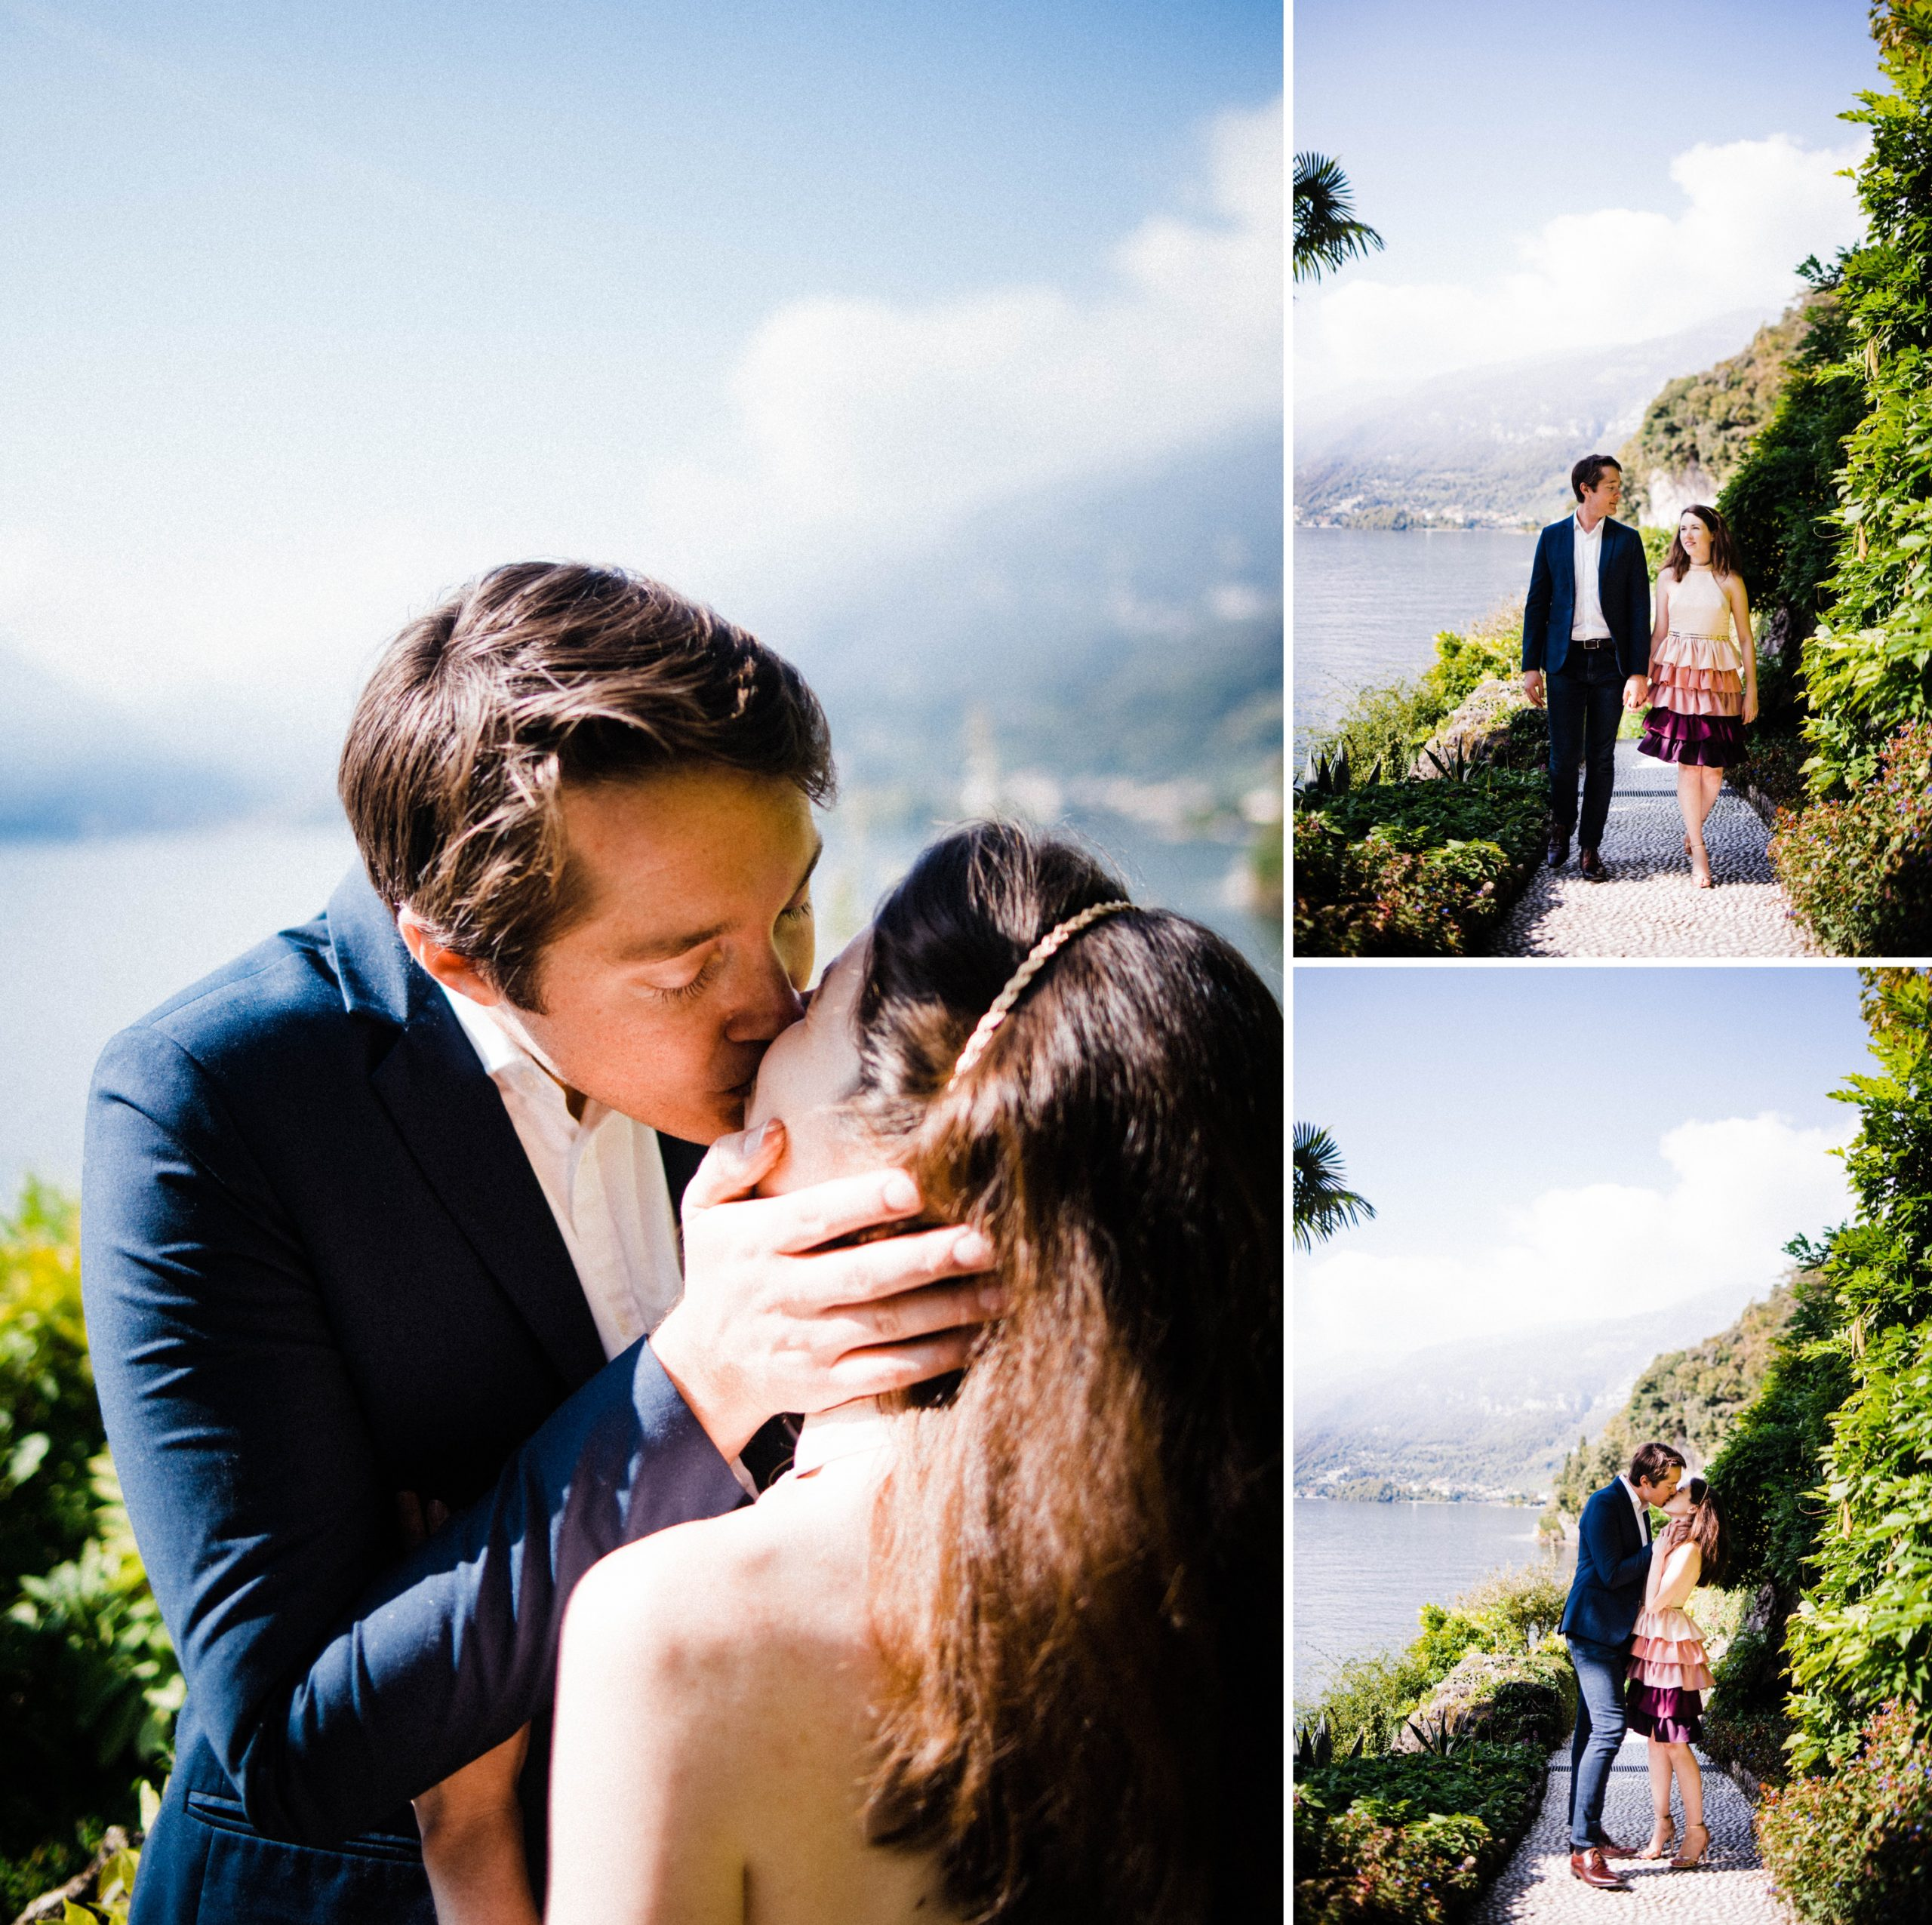 Villa Balbianello Portrait Photography, featuring three photos of a couple walking through the gardens, with Lake Como in the background.